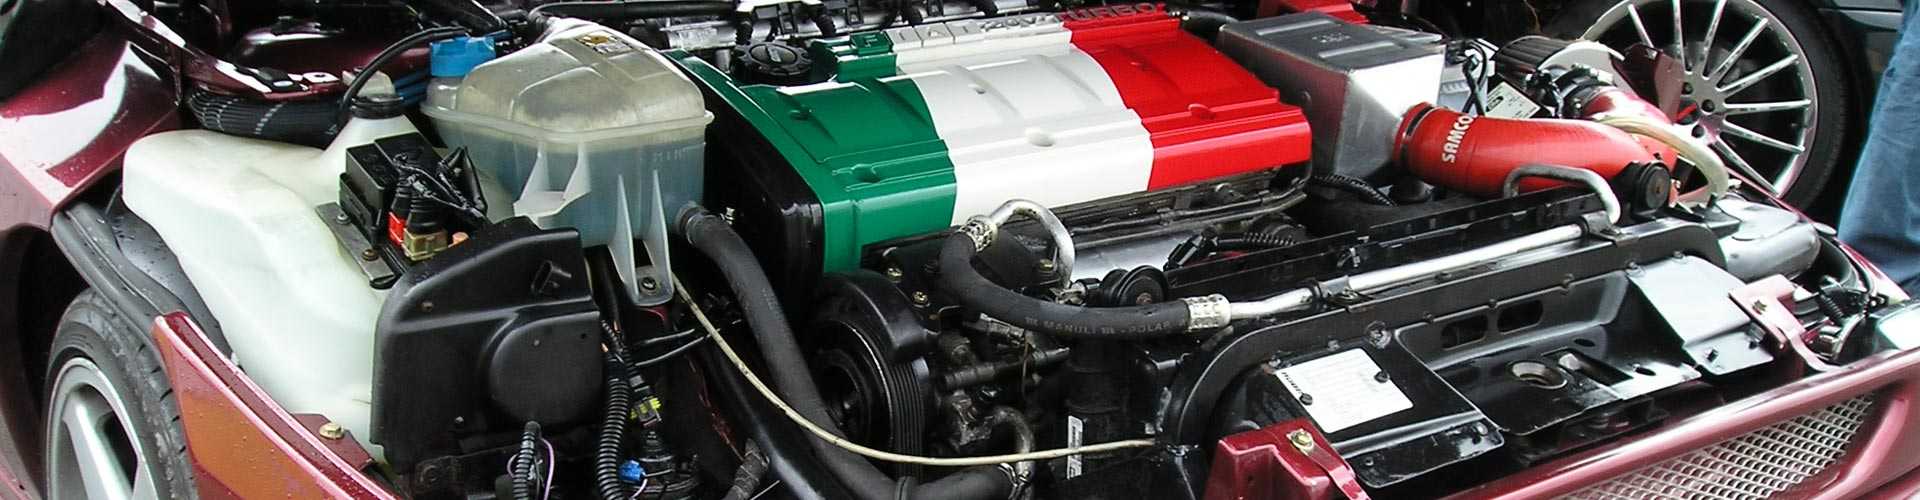 Fiat, Alfa Romeo and Abarth 500 Tuning Specialists| L&M